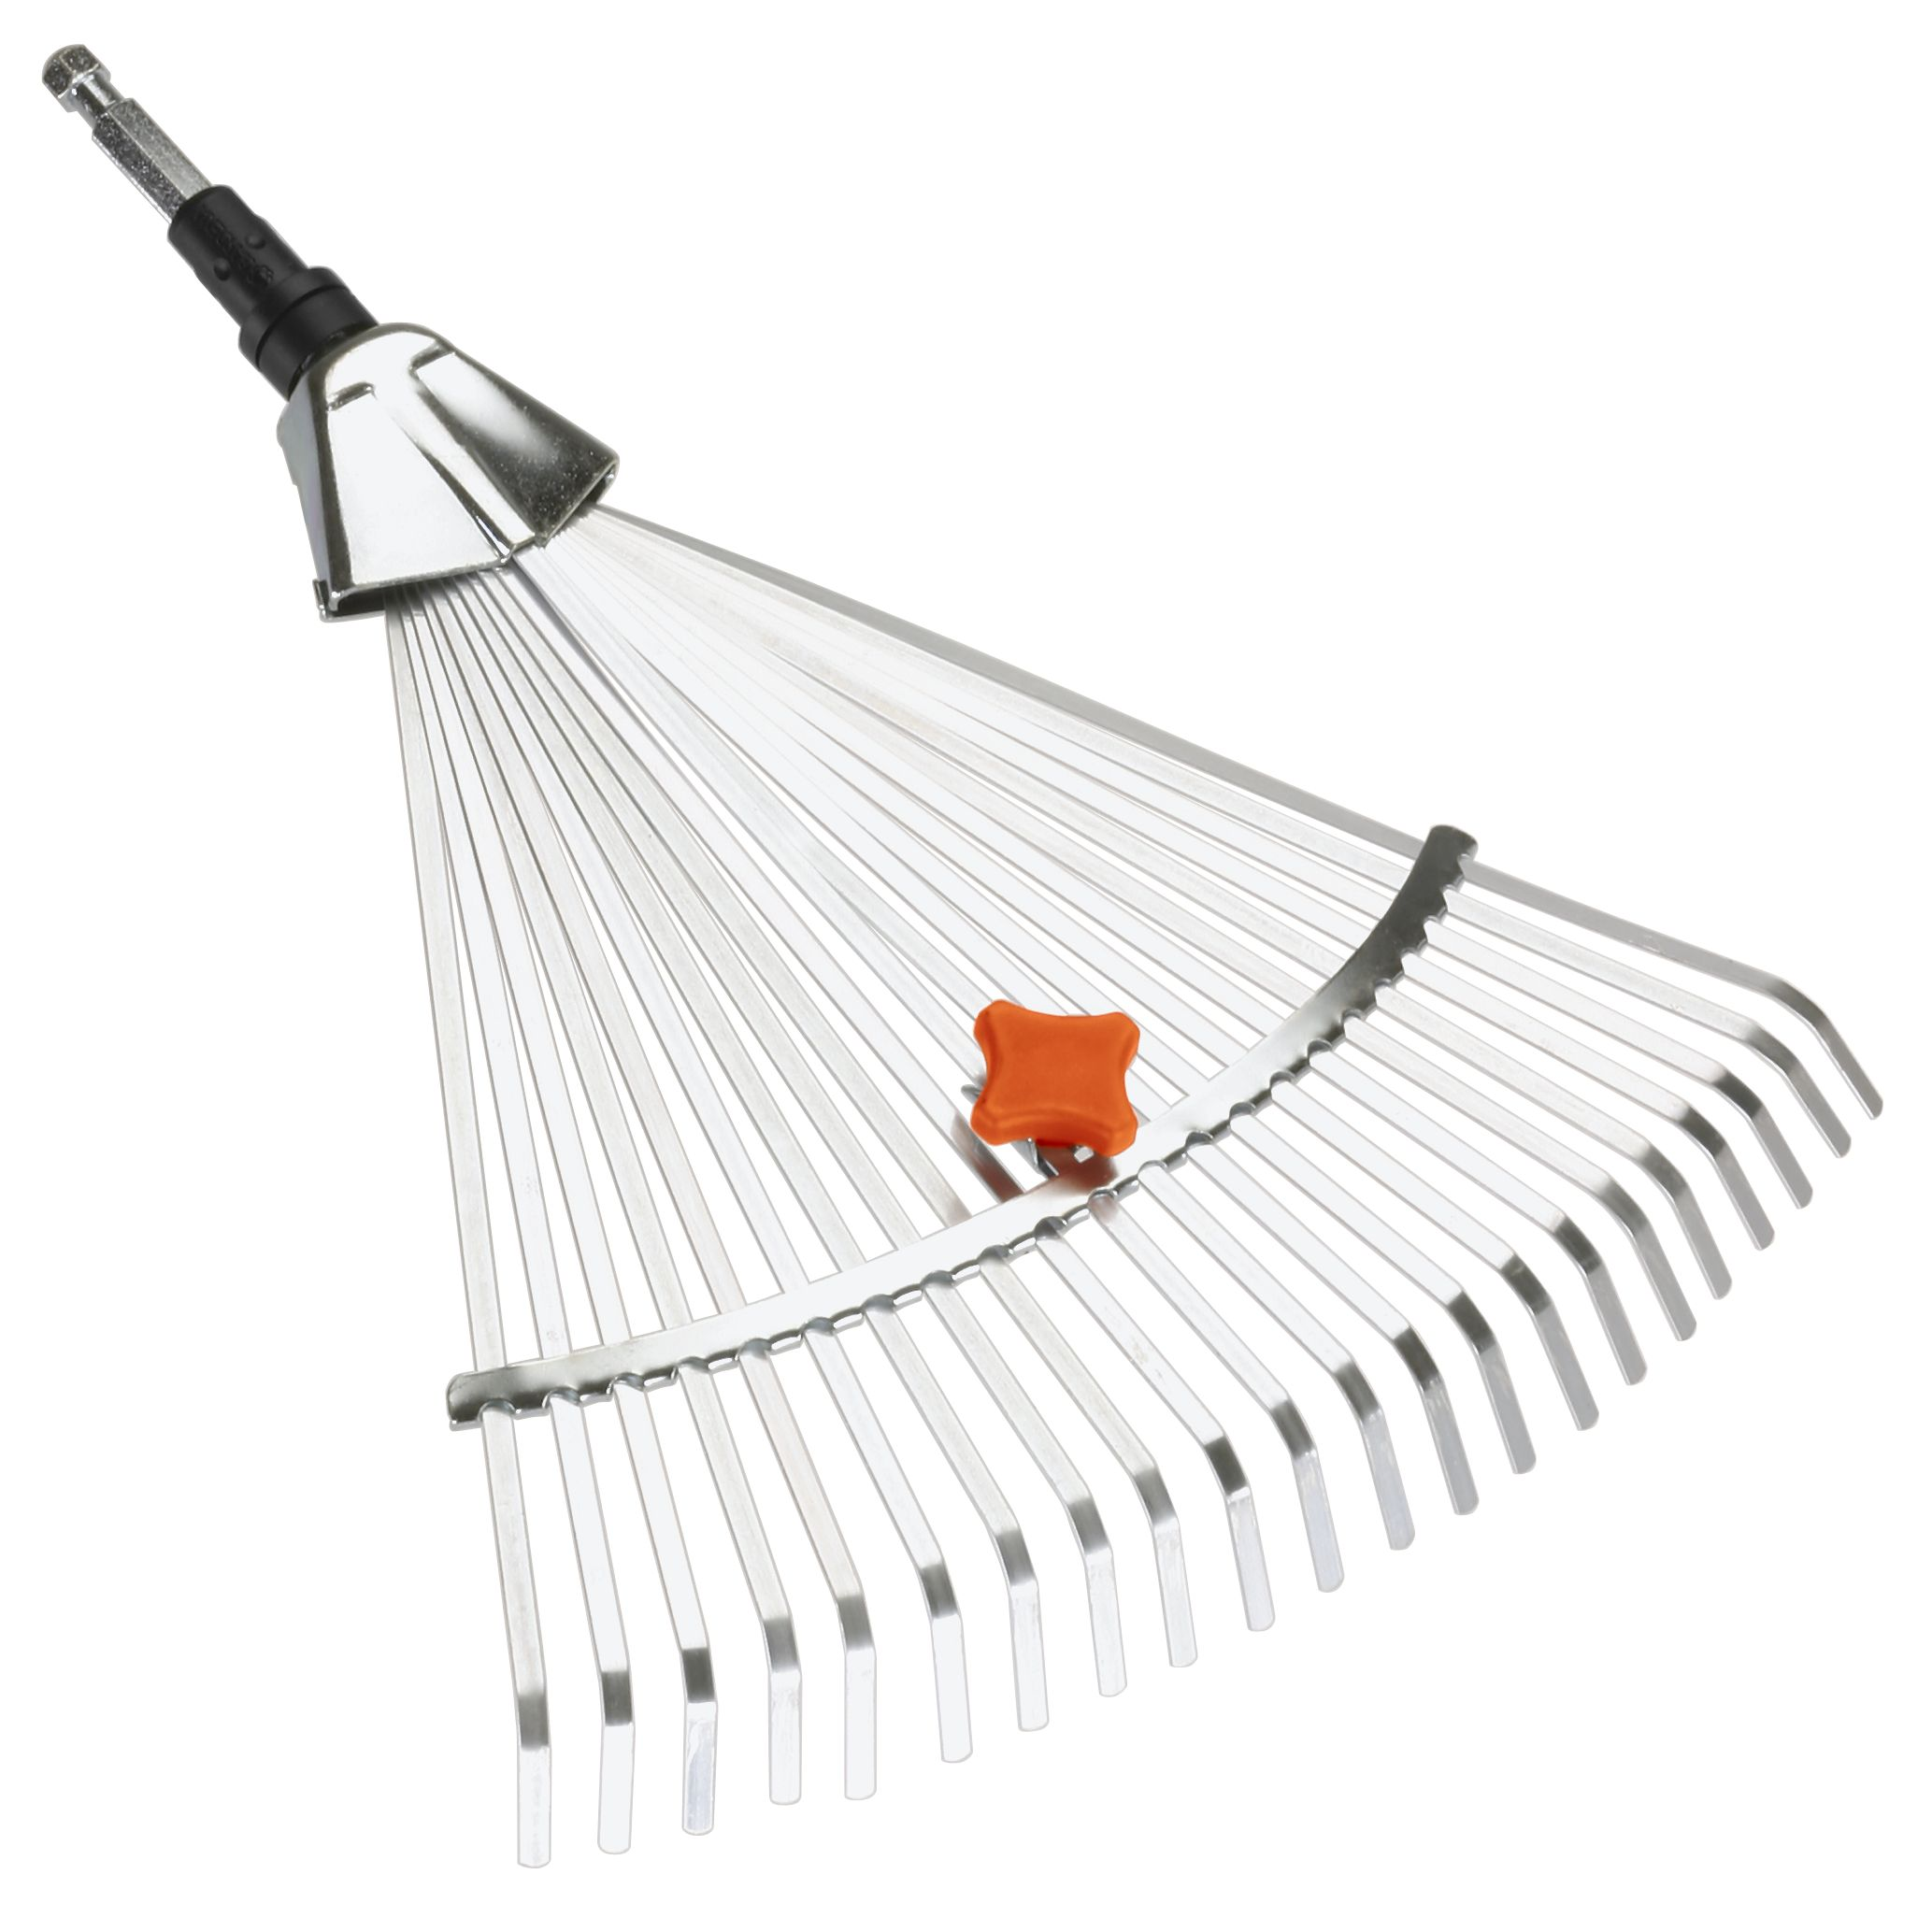 GD-0105 (3103-20 Gardena combisystem Adjustable Rake)